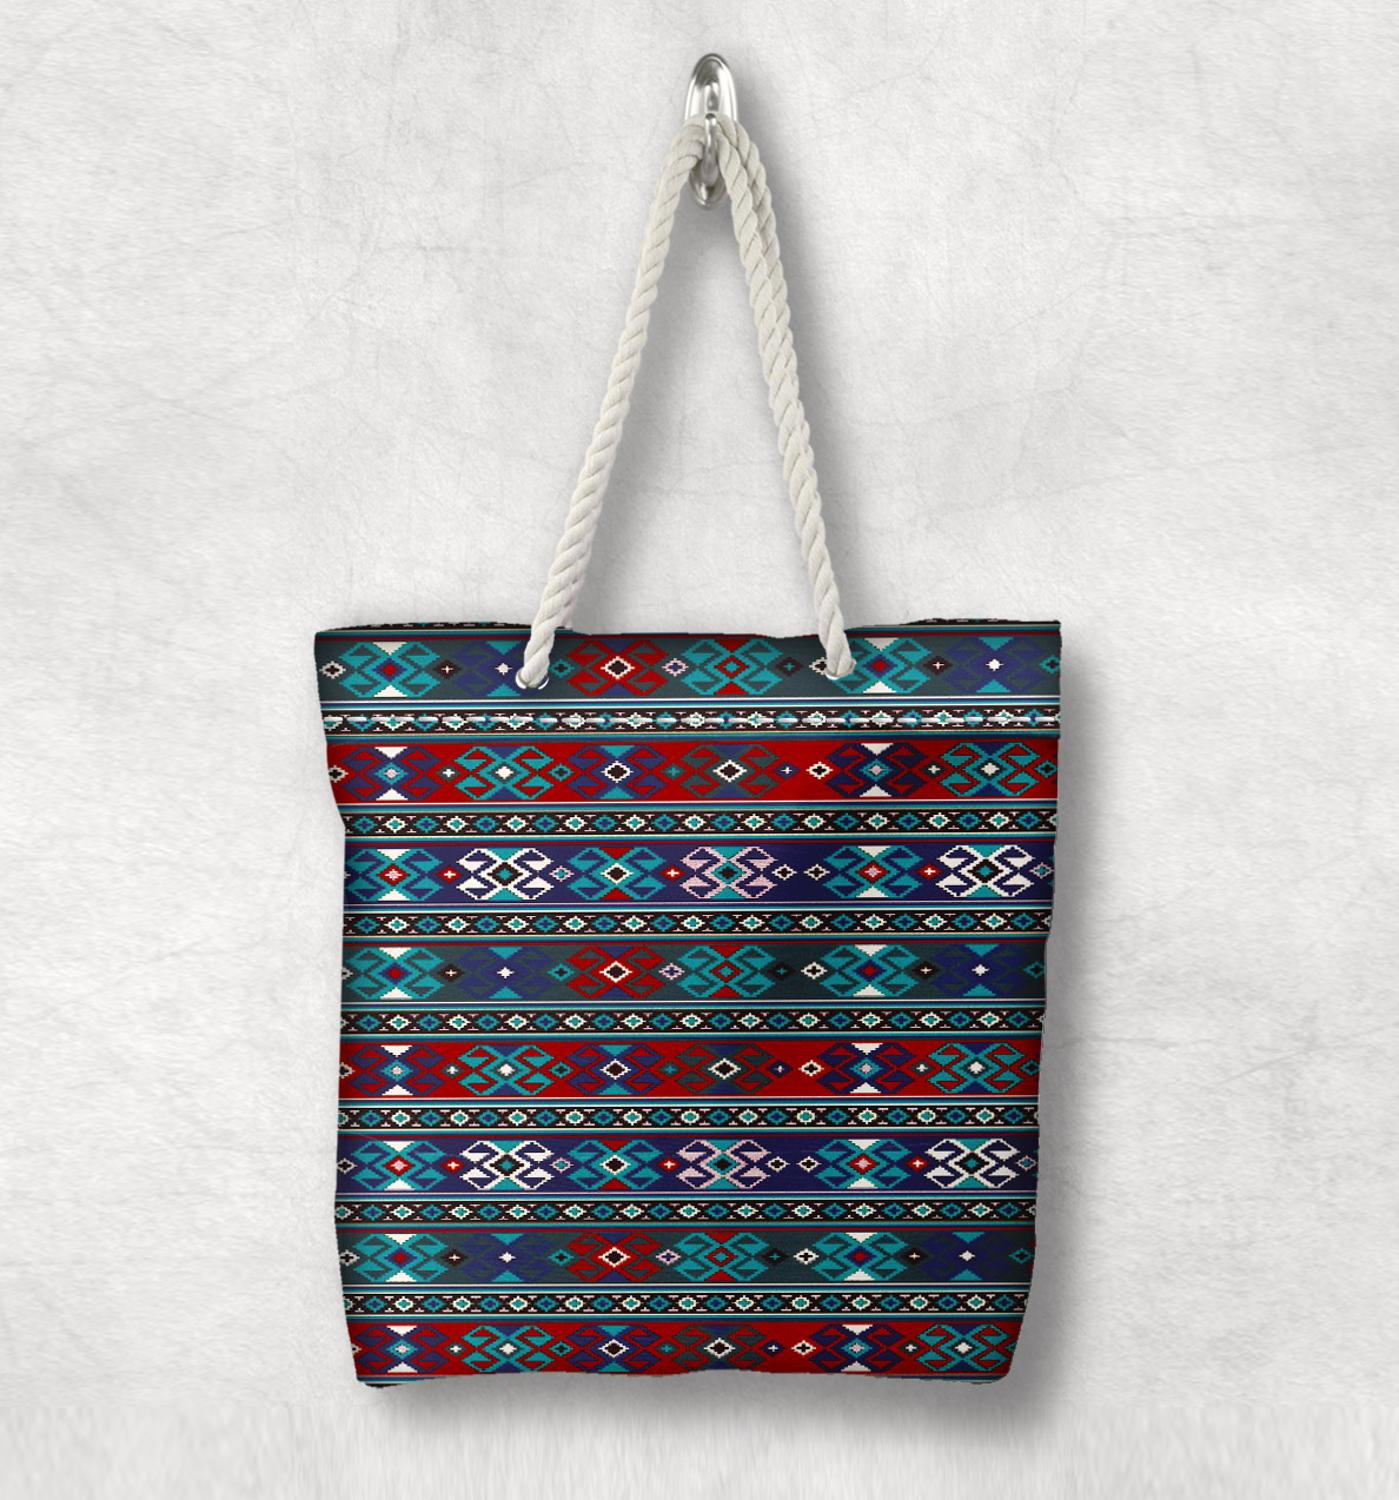 Else Blue Red Vintage Authentic Anatolia  New Fashion White Rope Handle Canvas Bag Cotton Canvas Zippered Tote Bag Shoulder Bag